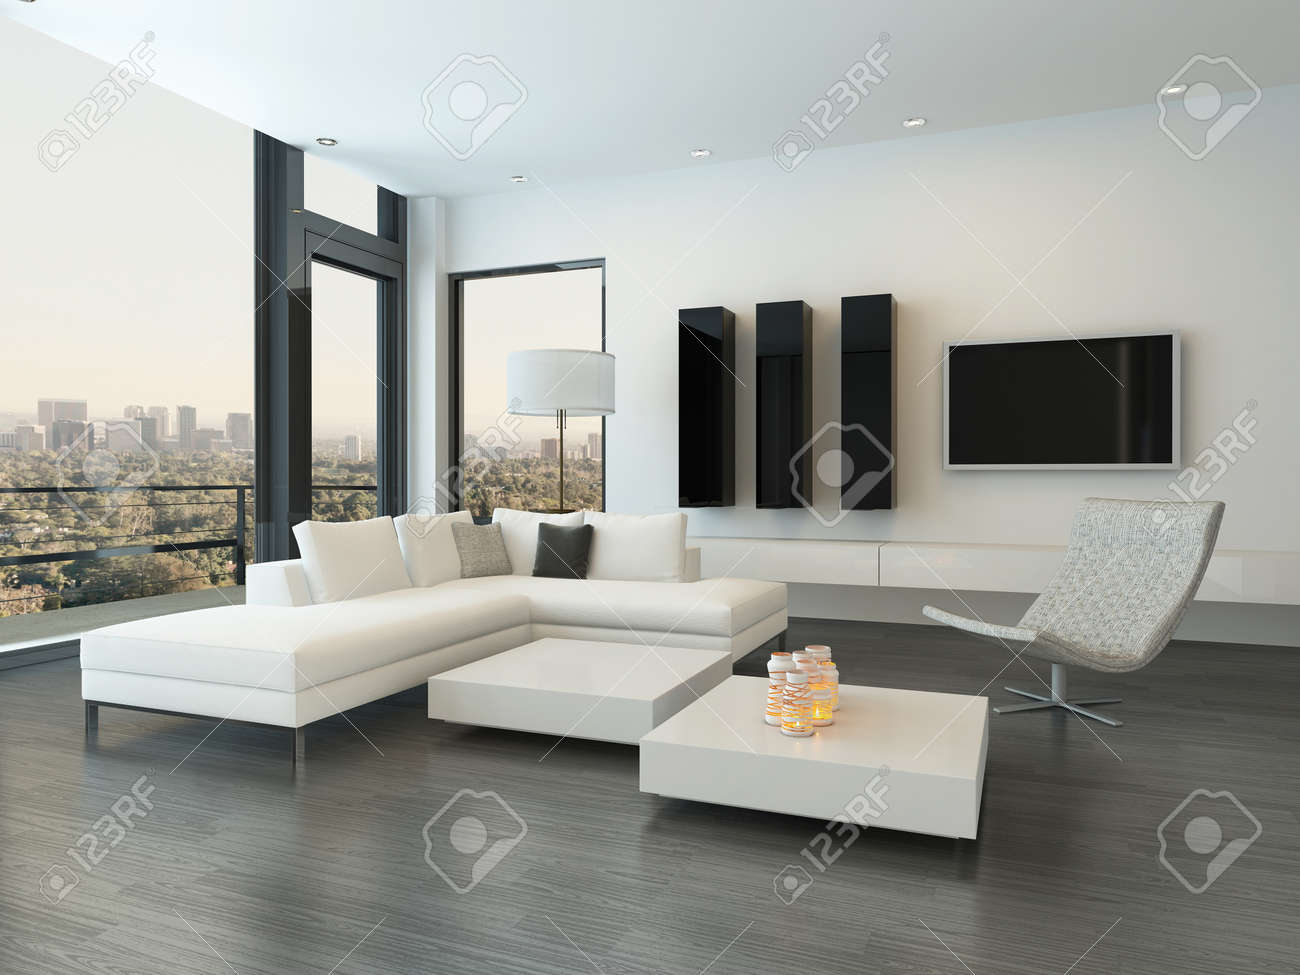 Modern Living Room Interior With Design Furniture Stock Photo   25065587